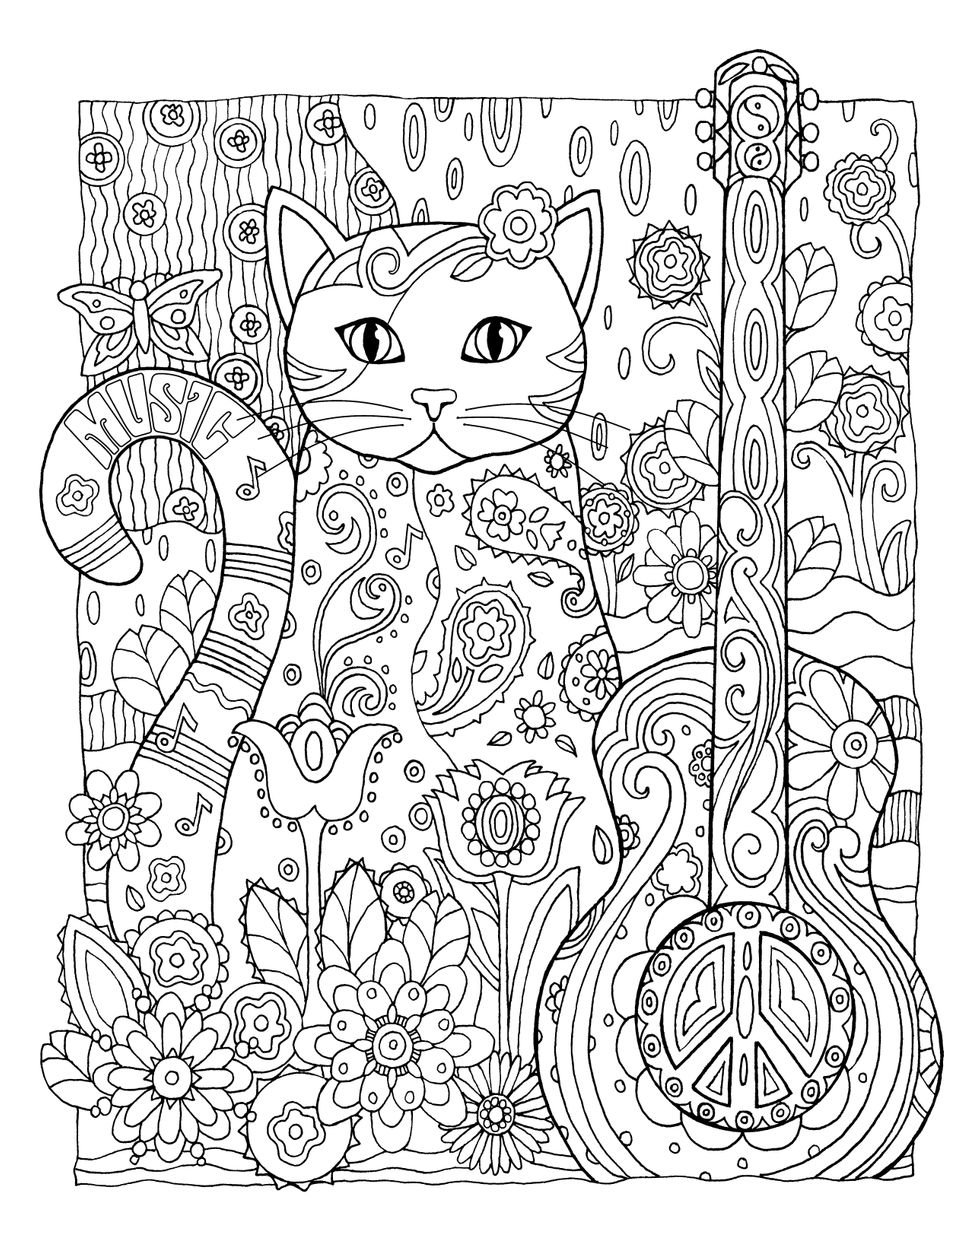 """<a href=""""http://www.amazon.com/Creative-Haven-Cats-Coloring-Books/dp/0486789640/ref=sr_1_5?ie=UTF8&keywords=creative+haven+co"""